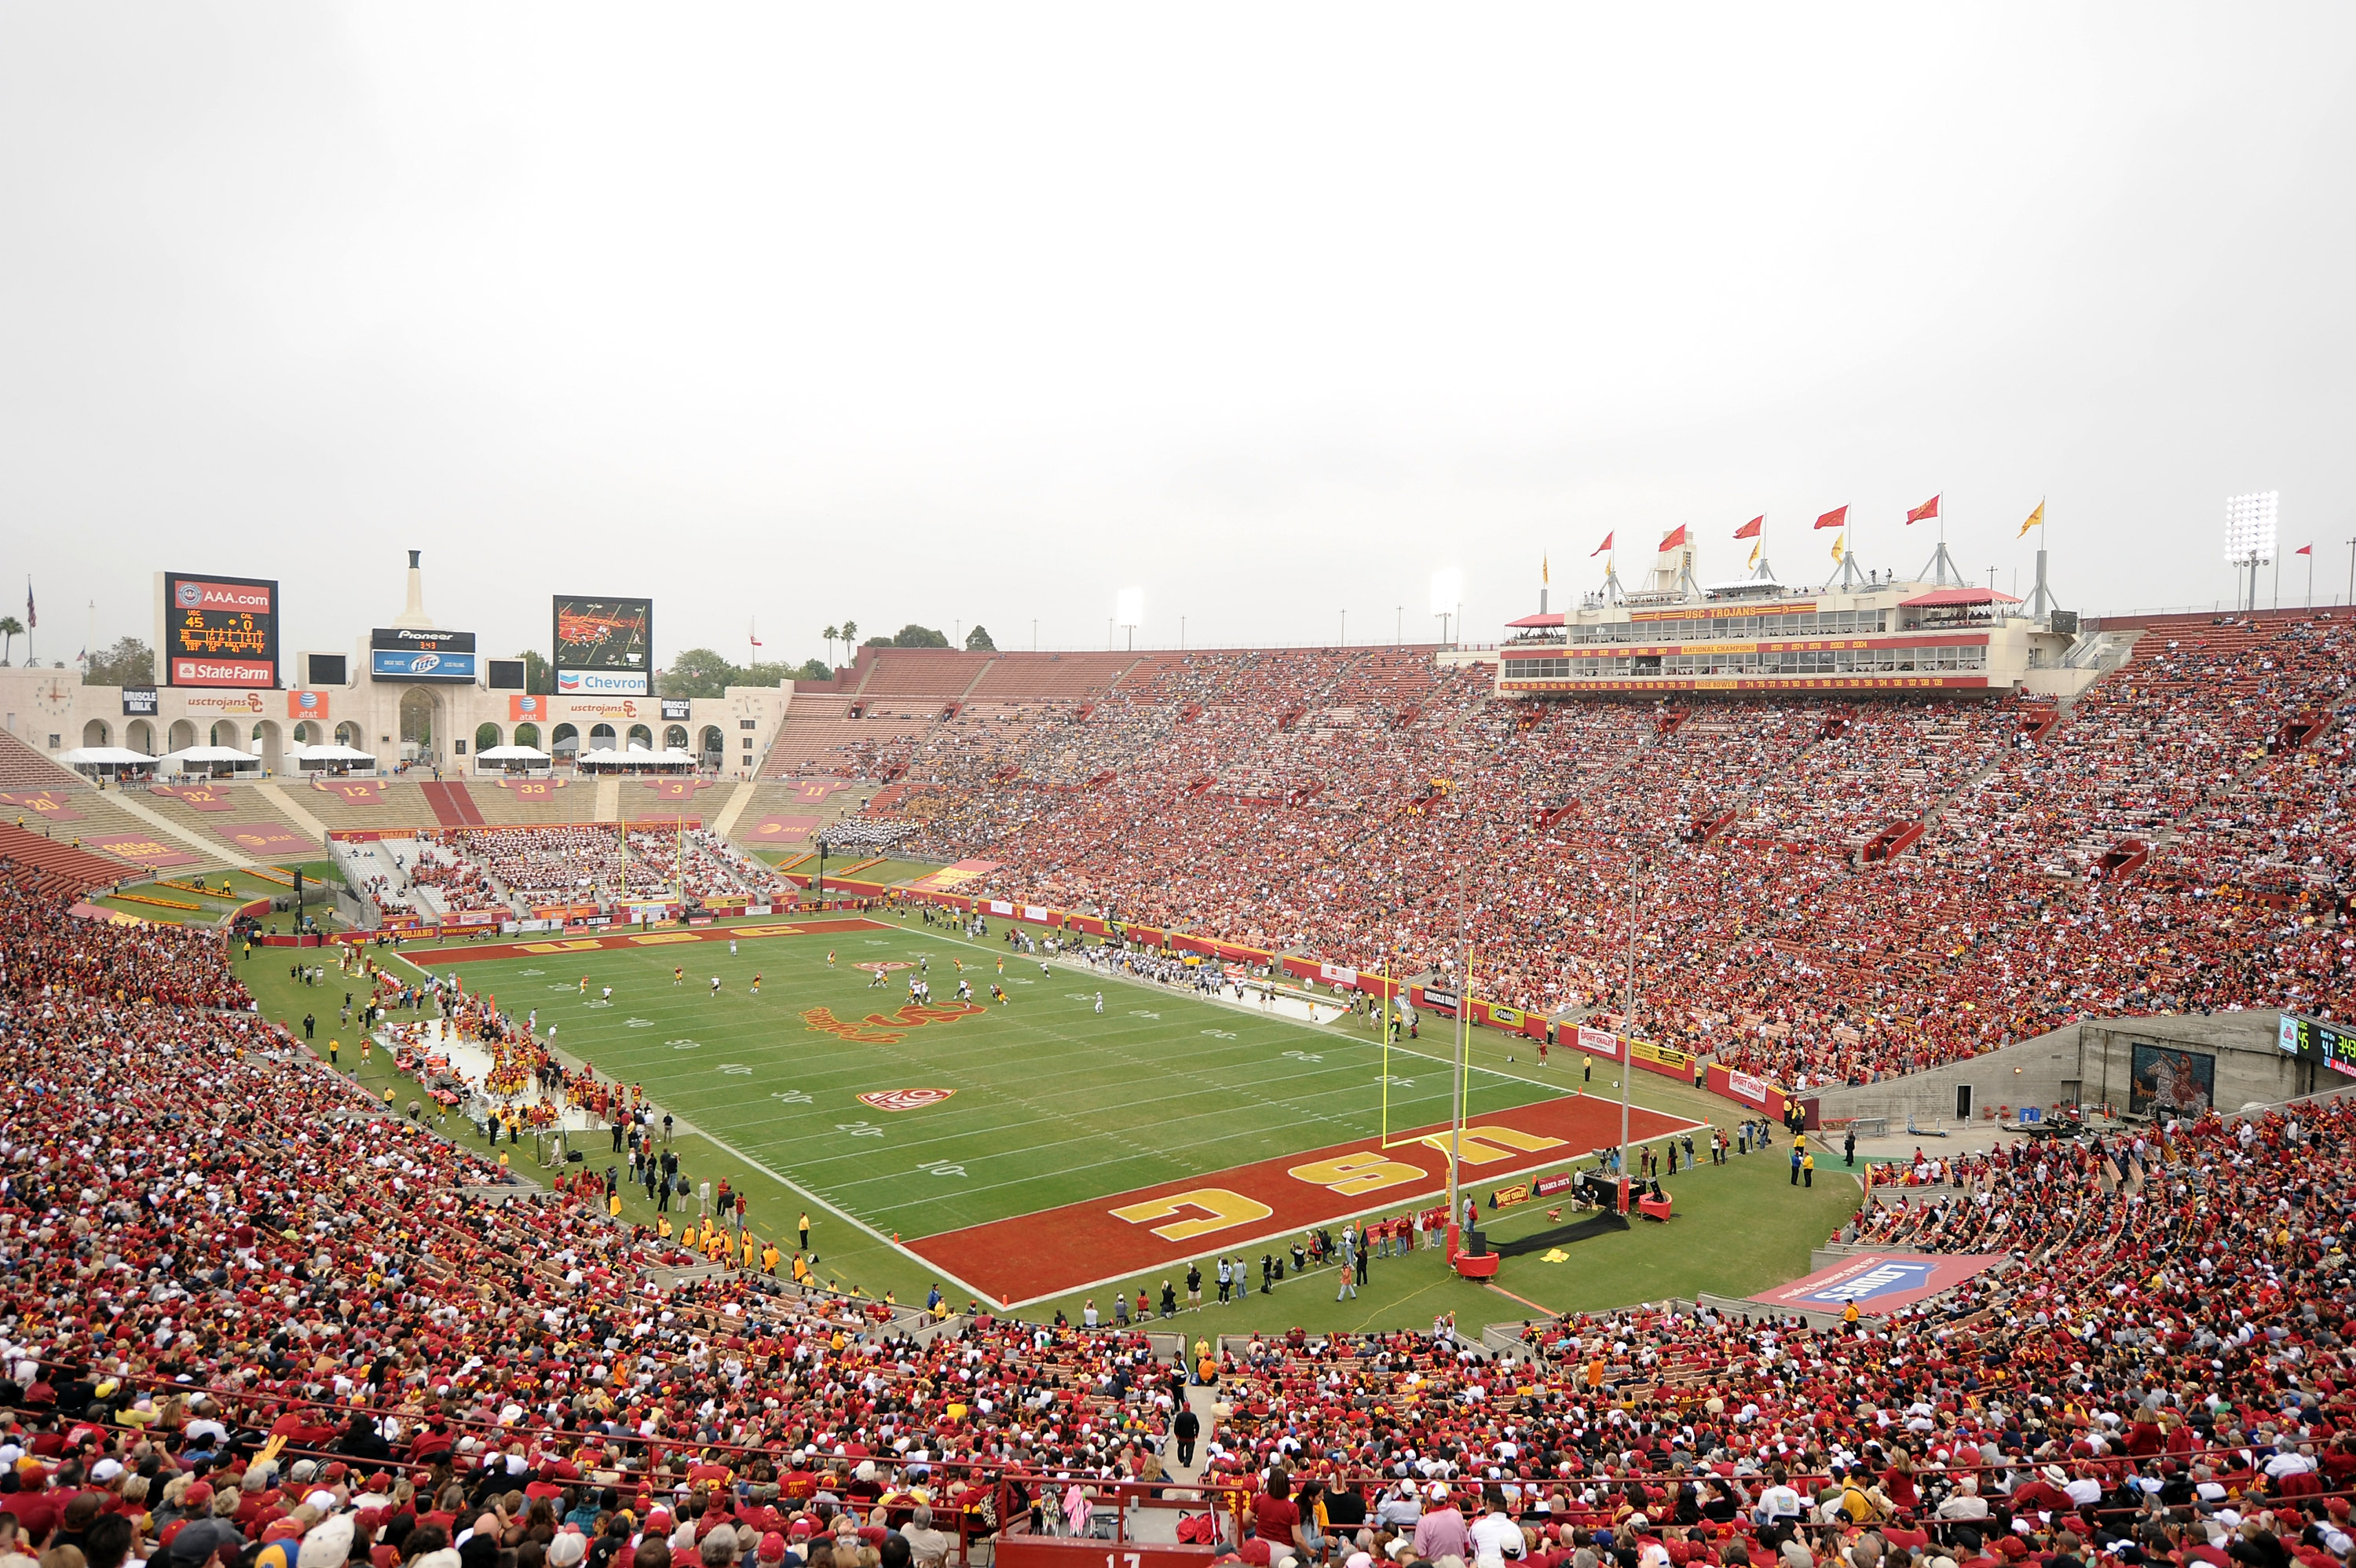 LOS ANGELES, CA - OCTOBER 16:  General View of the game between the California Golden Bears and the USC Trojans at Los Angeles Memorial Coliseum on October 16, 2010 in Los Angeles, California.  (Photo by Harry How/Getty Images)